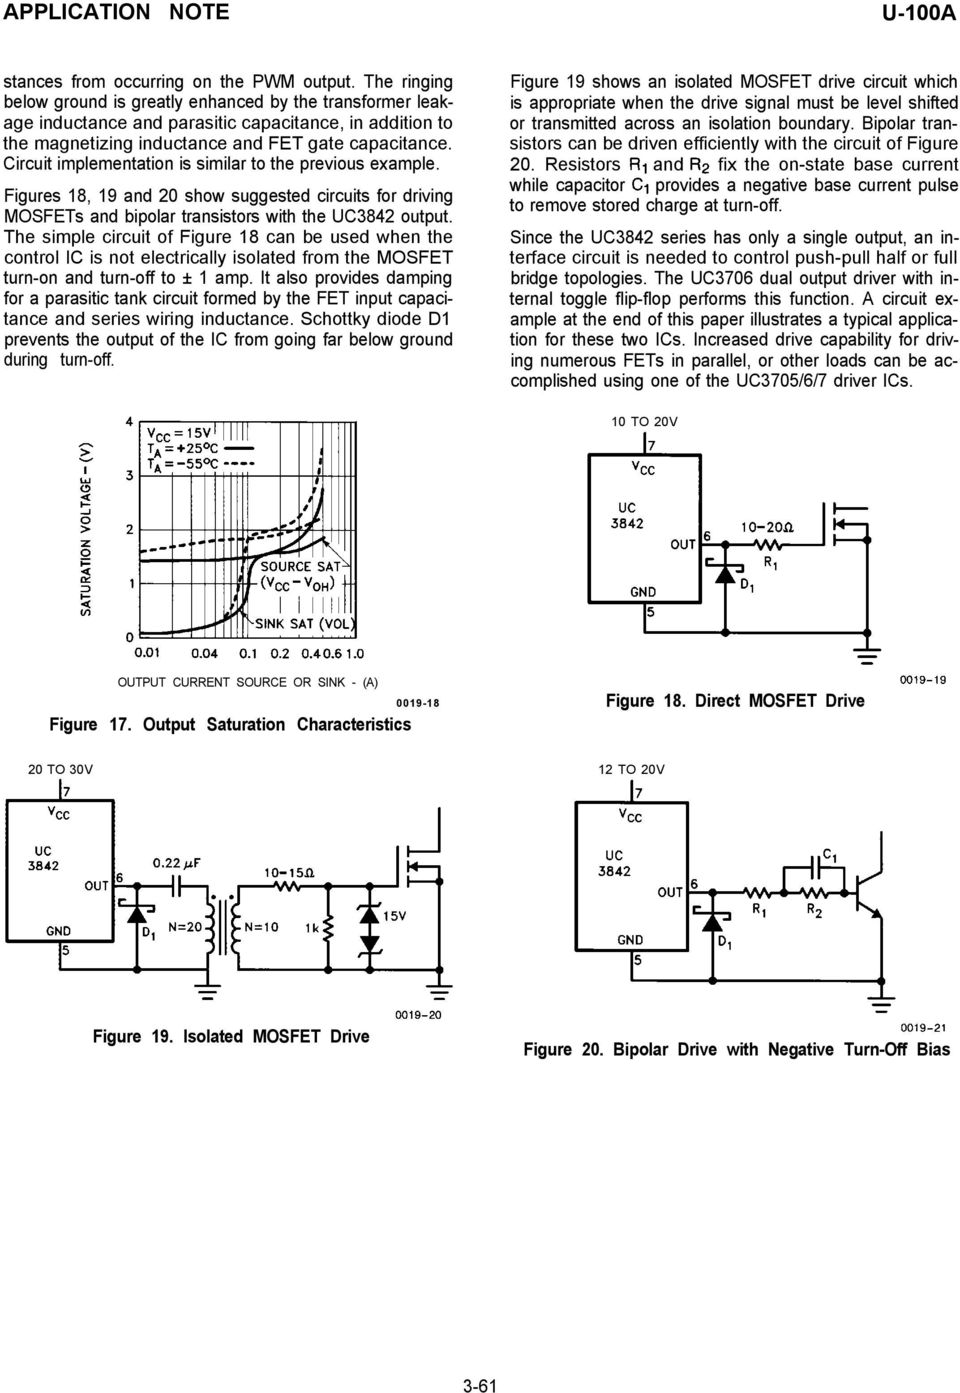 Circuit implementation is similar to the previous example. Figures 18, 19 and 20 show suggested circuits for driving MOSFETs and bipolar transistors with the UC3842 output.